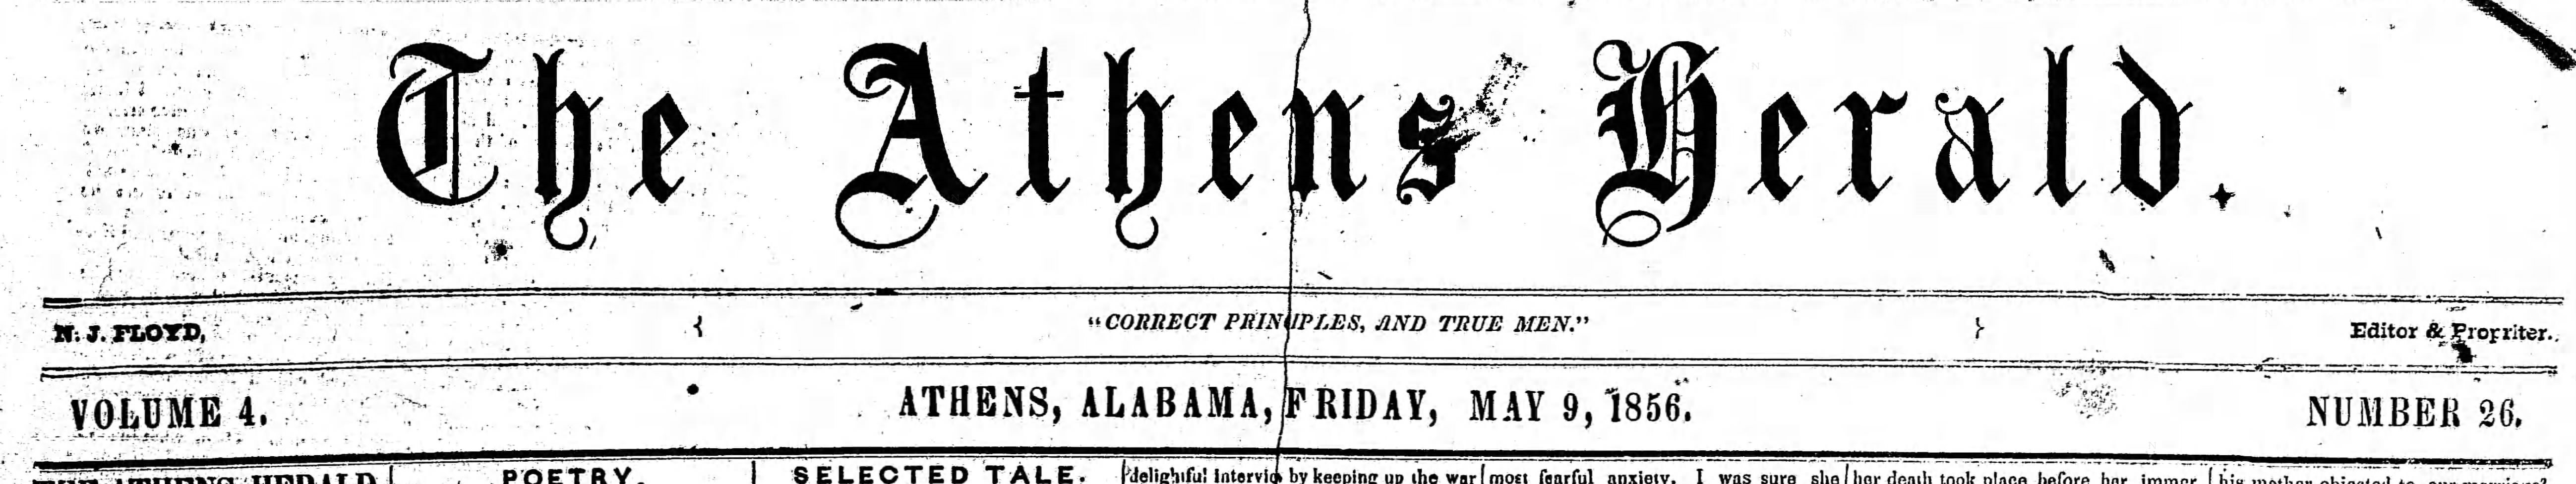 PATRON - May 9, 1856 – Sale of Indian Land, marriage, stabbing and probate court in Athens, Limestone County, Alabama.